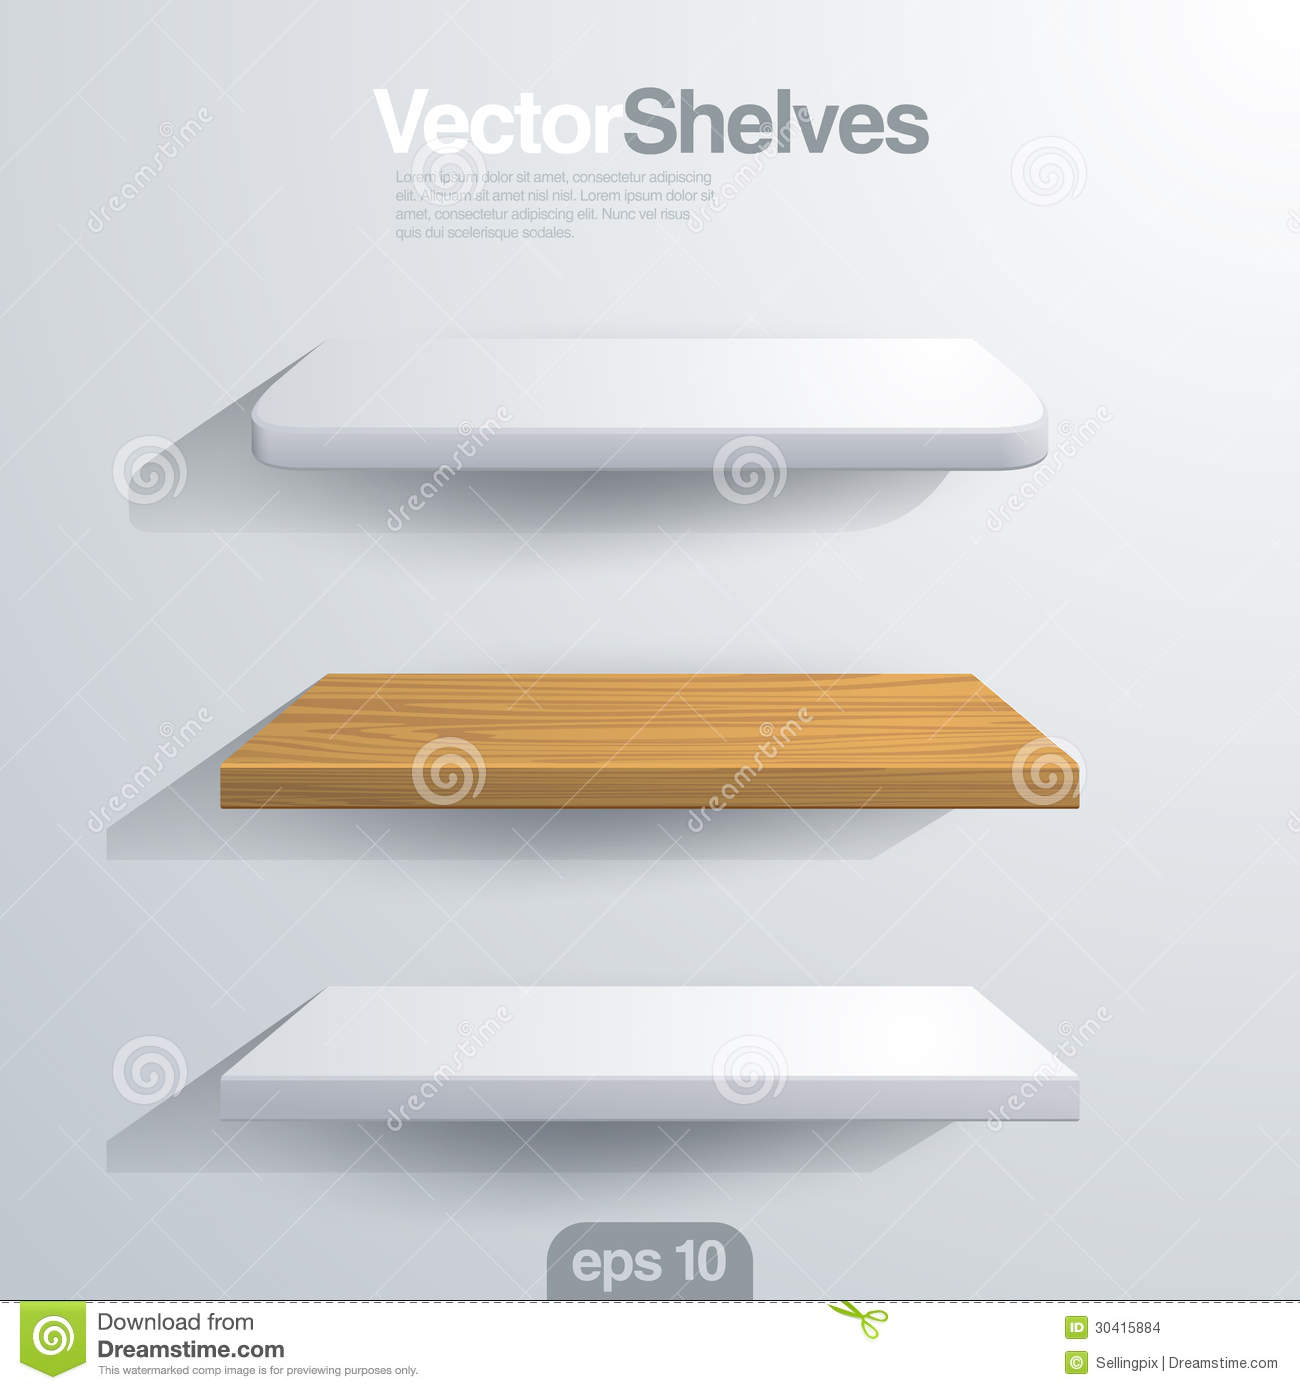 3D Vector shelves. Rectangle and rounded corner sh